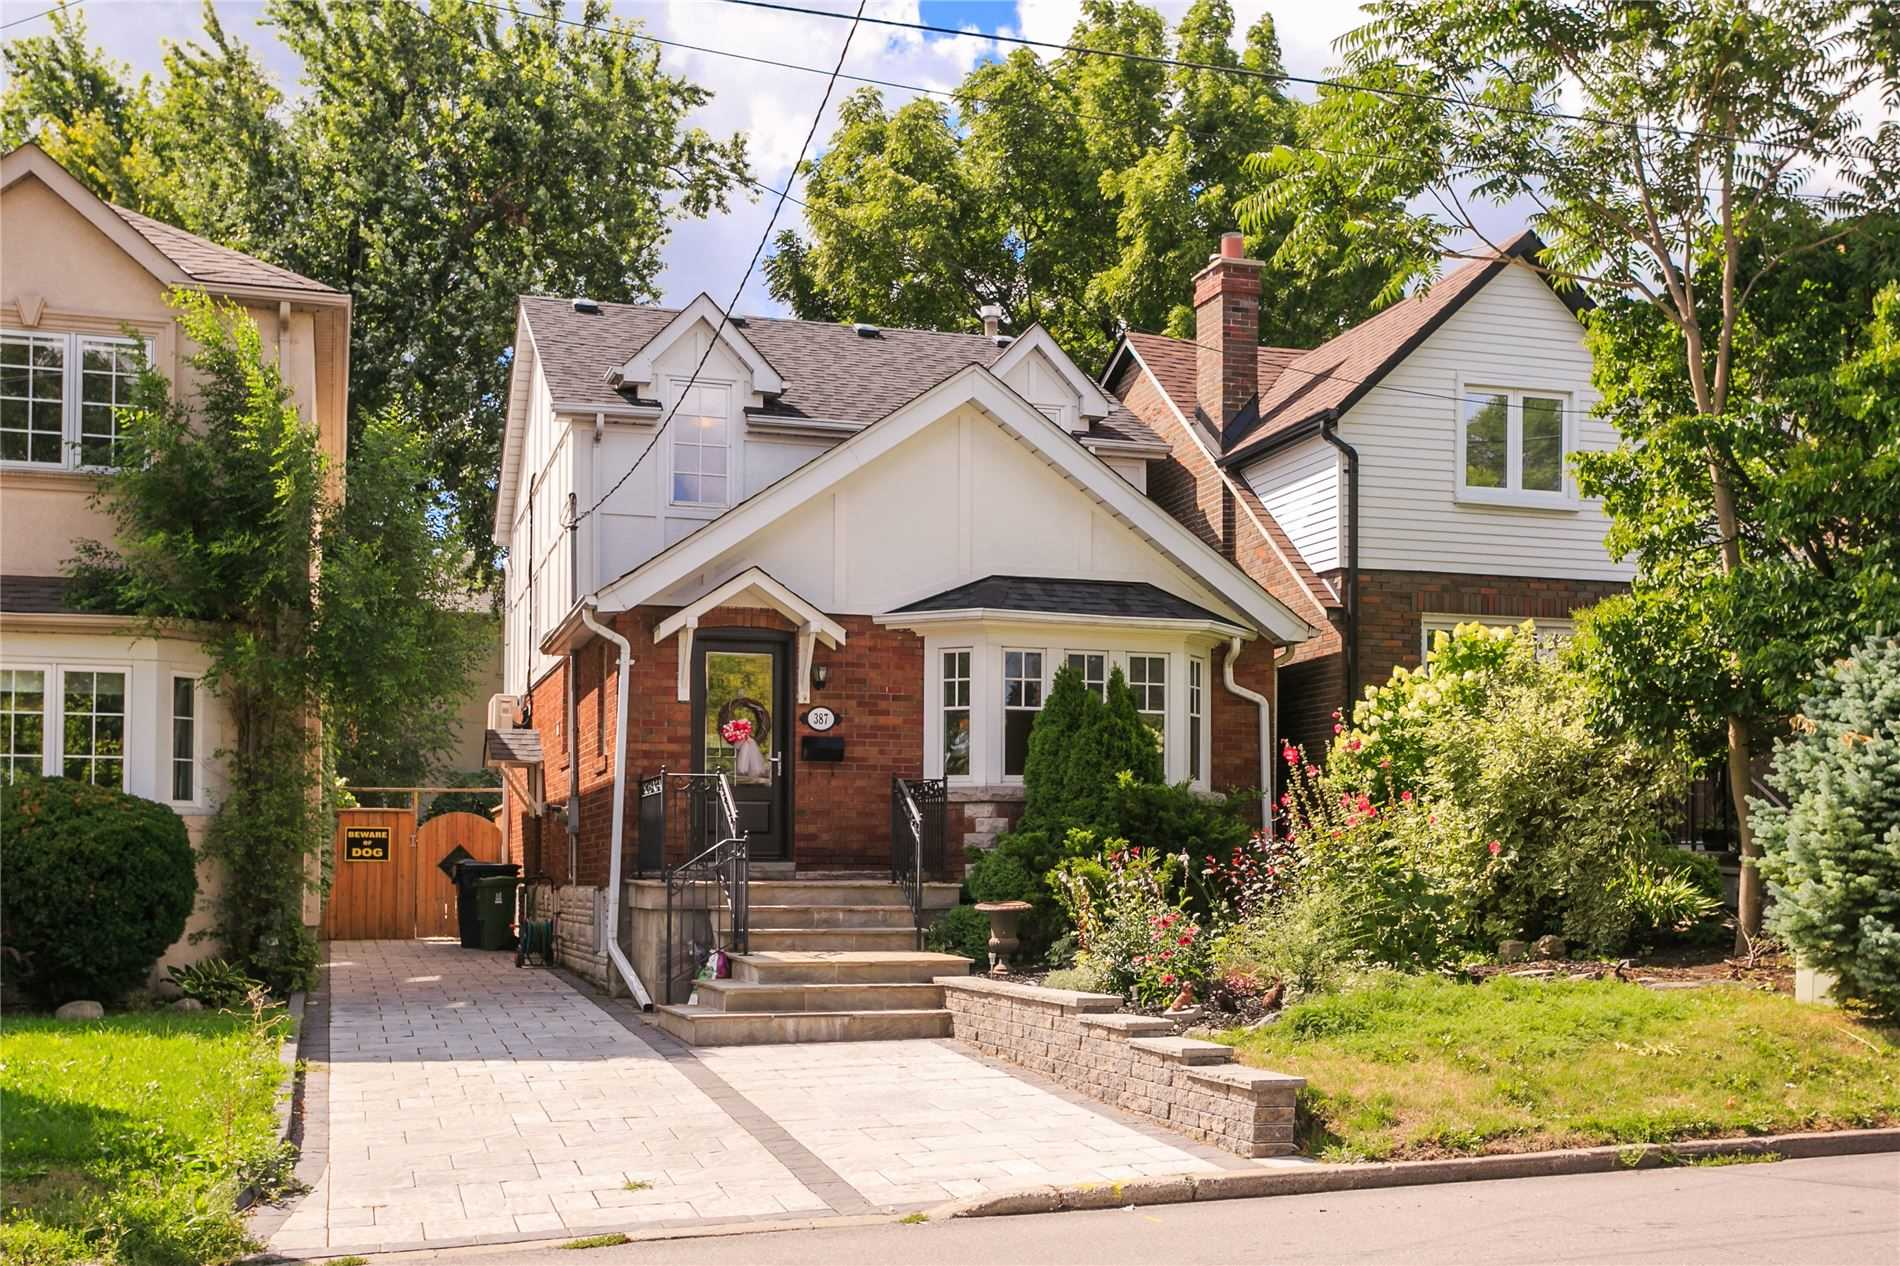 387 Old Orchard Grve, Toronto Ontario, Canada